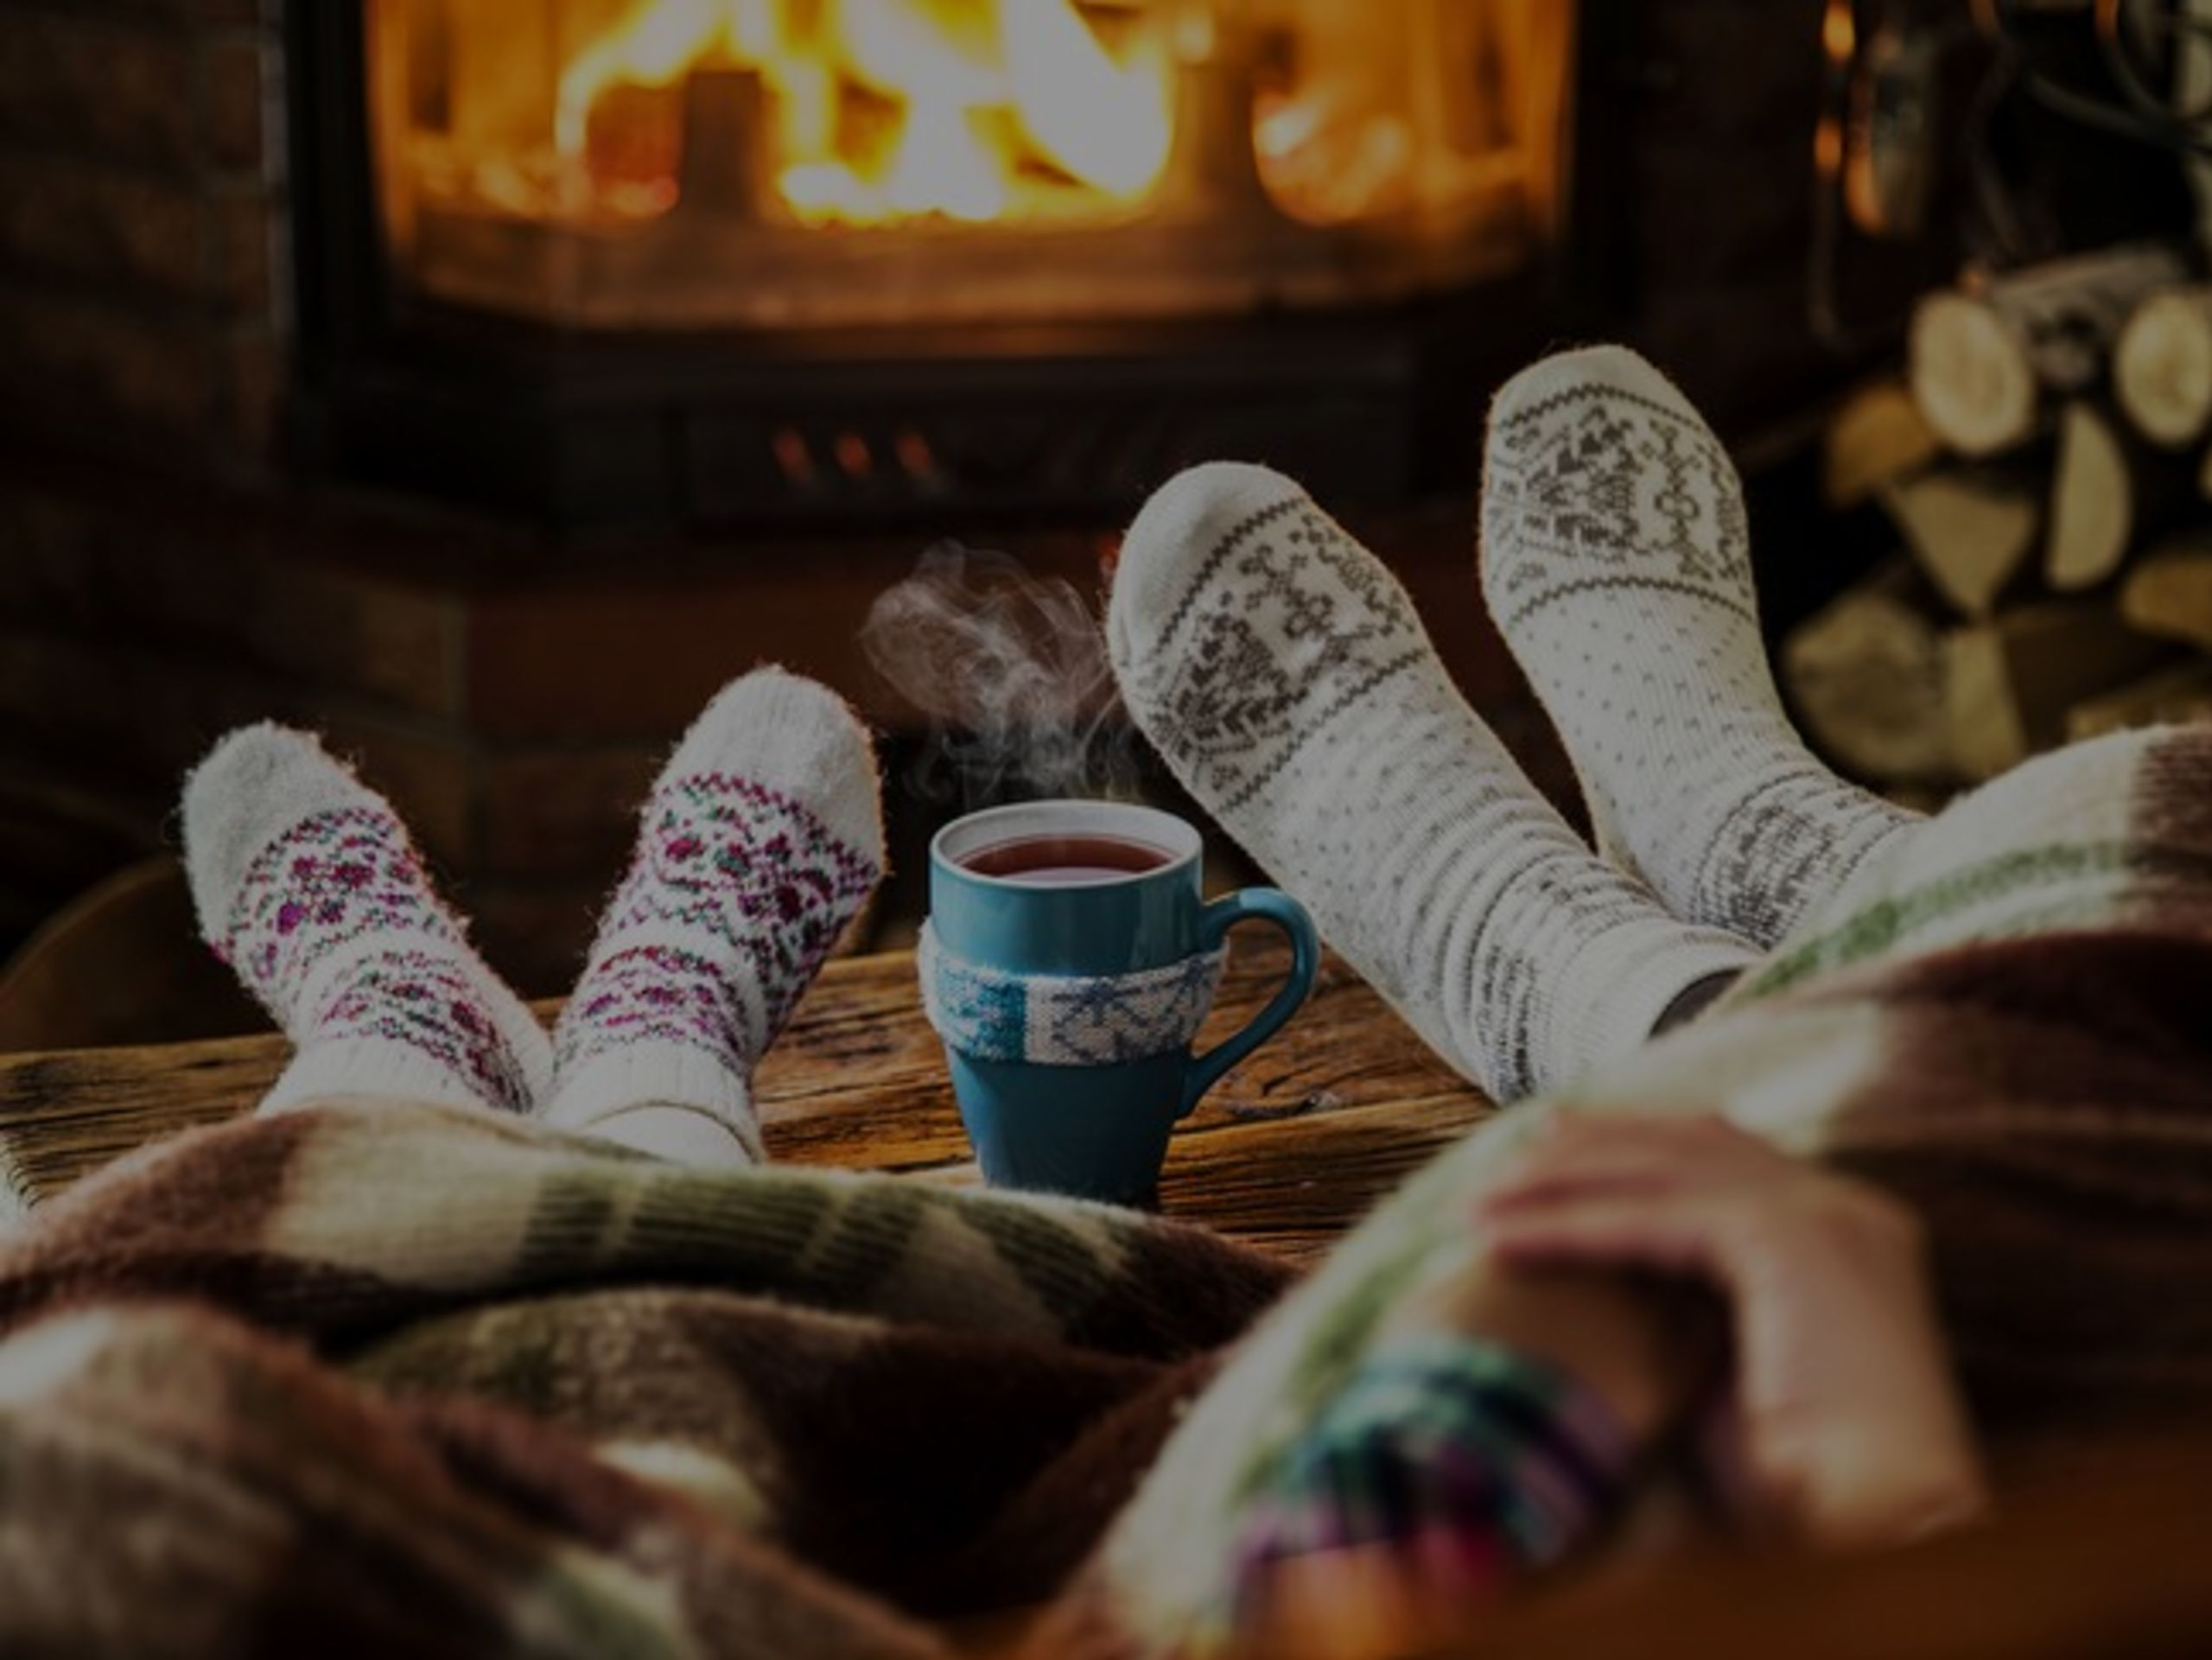 Cozy By the Wood Stove: How to Stay Toasty and Not Burn Your House Down